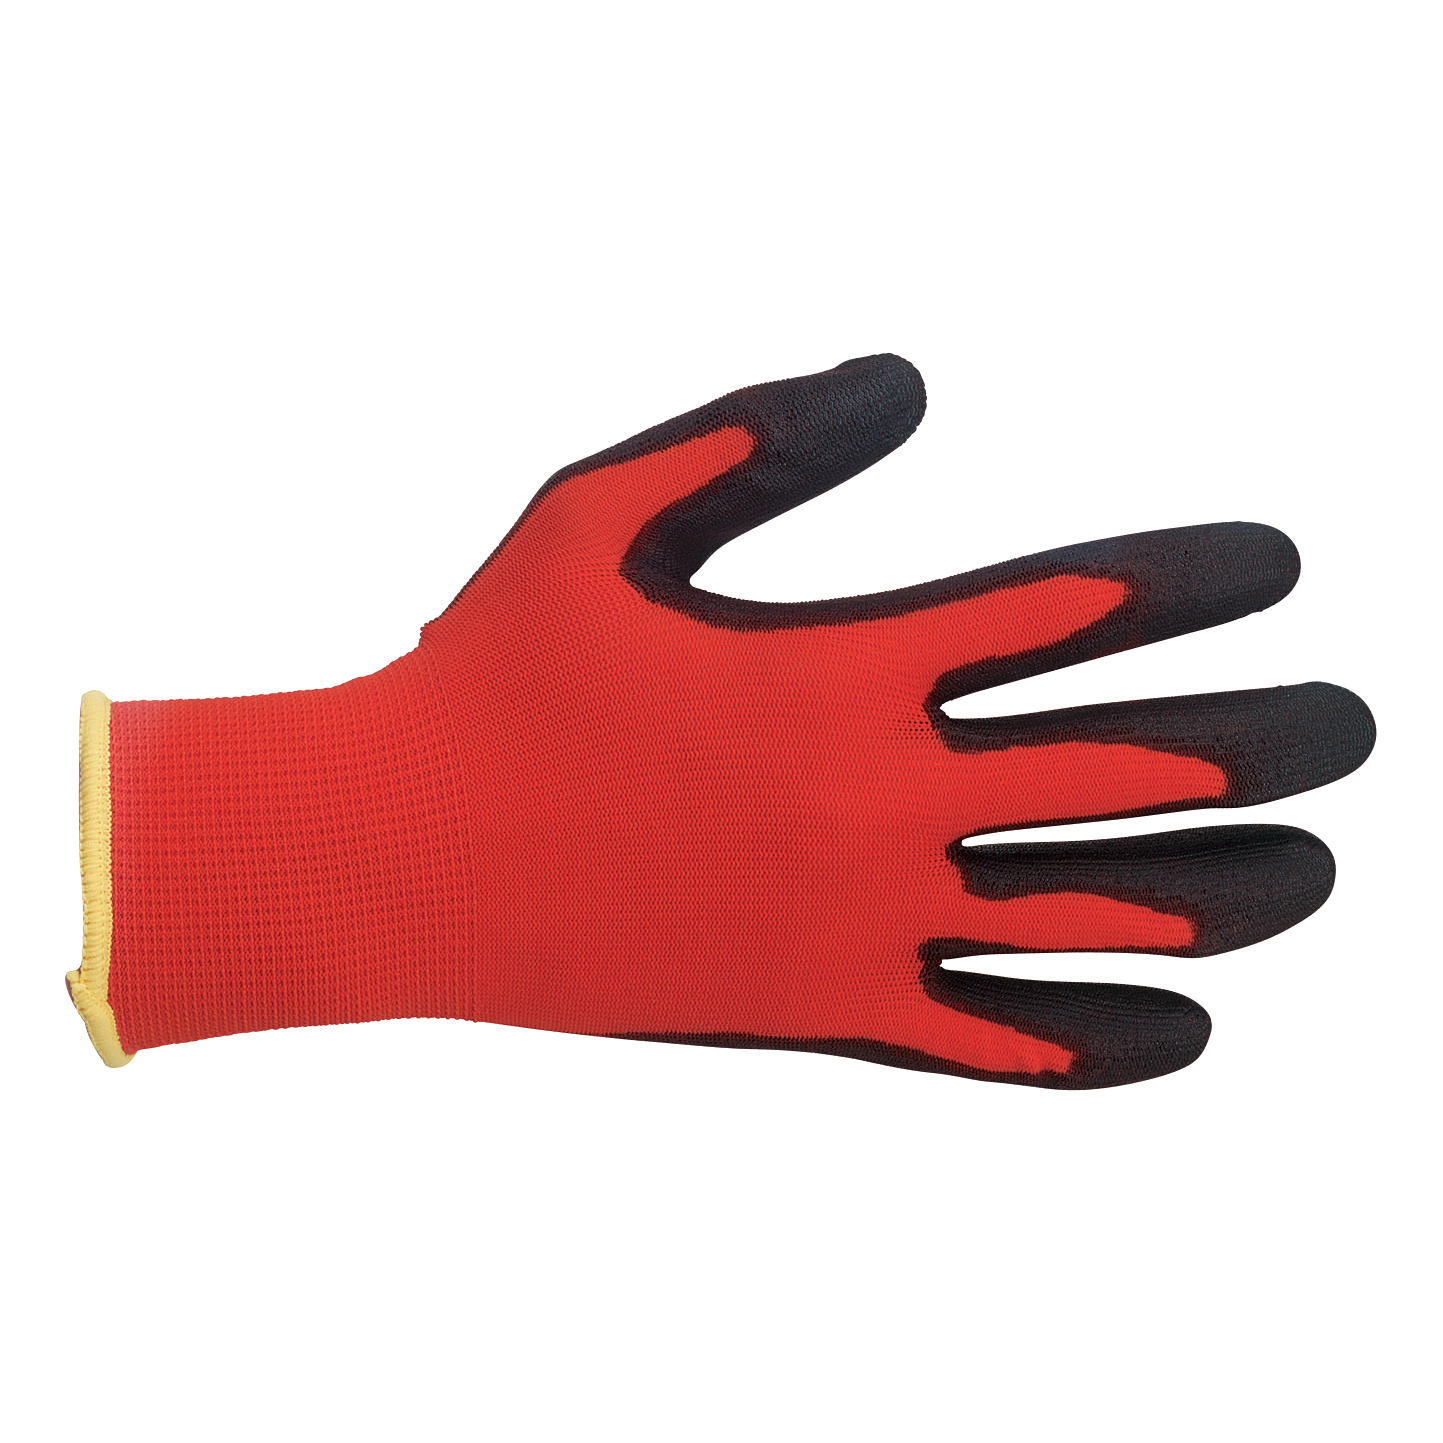 Polyco Safety Gloves PU Coated Size 8 Red/Black [Pair] Ref MRP/08